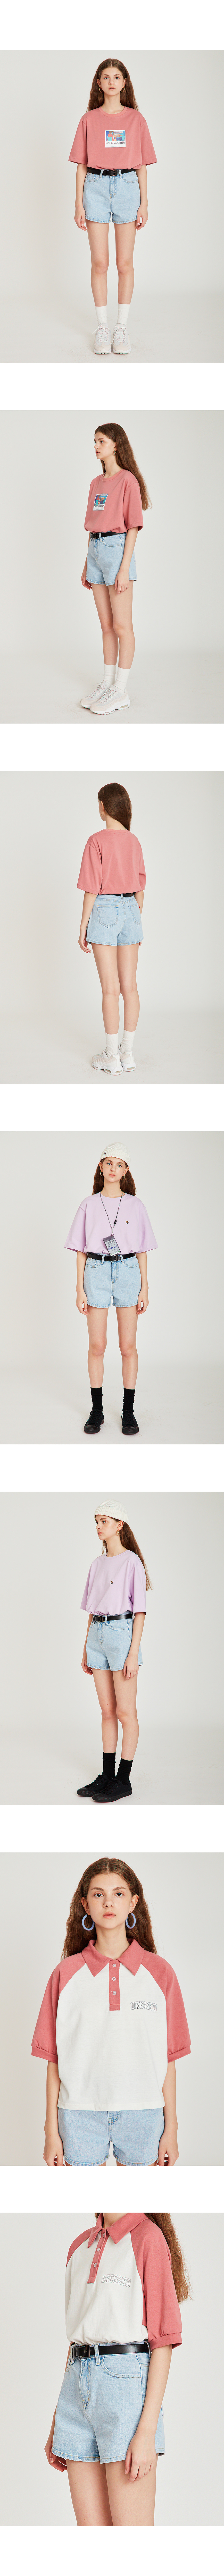 매치글로브(MATCHGLOBE) MG9S DENIM BASIC SHORTS (LIGHT BLUE)